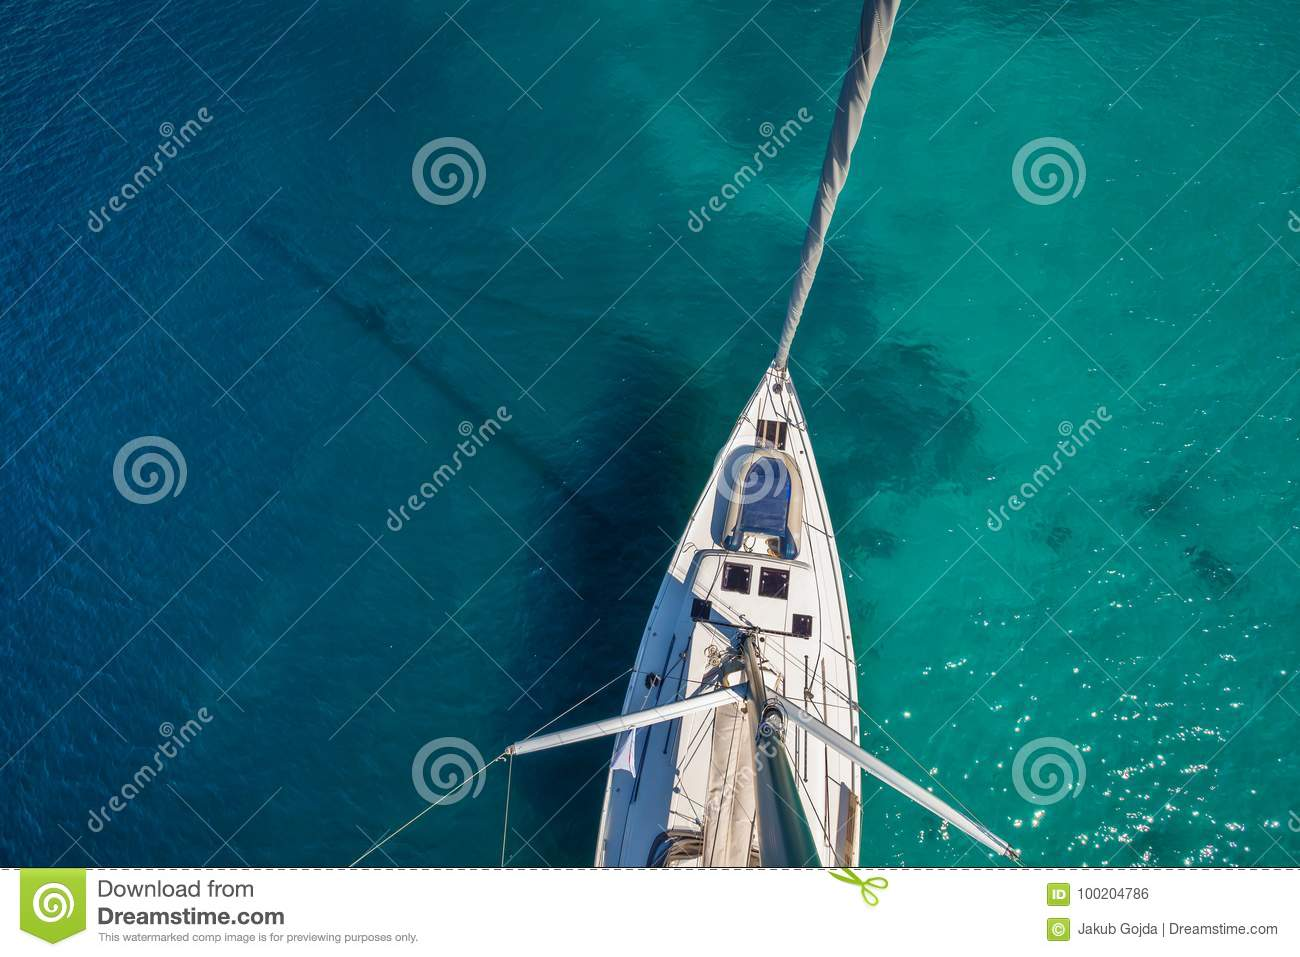 View from high angle of sailing boat. Aerial photography of ship